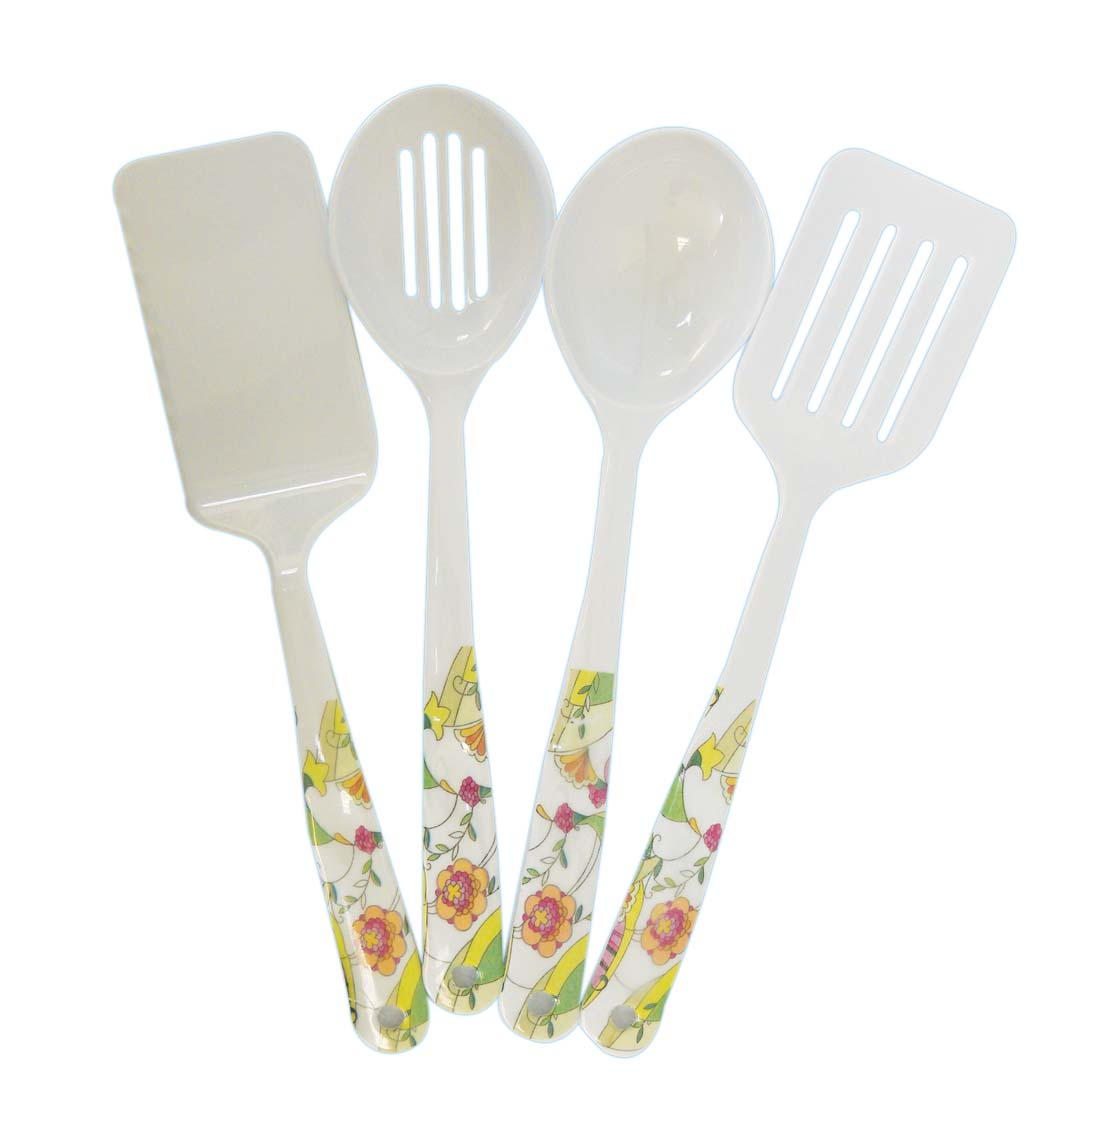 View  SERVING UTENSILS 2 SLOTTED/2 SOLID  SPATULA AND SPOON MELAMINE